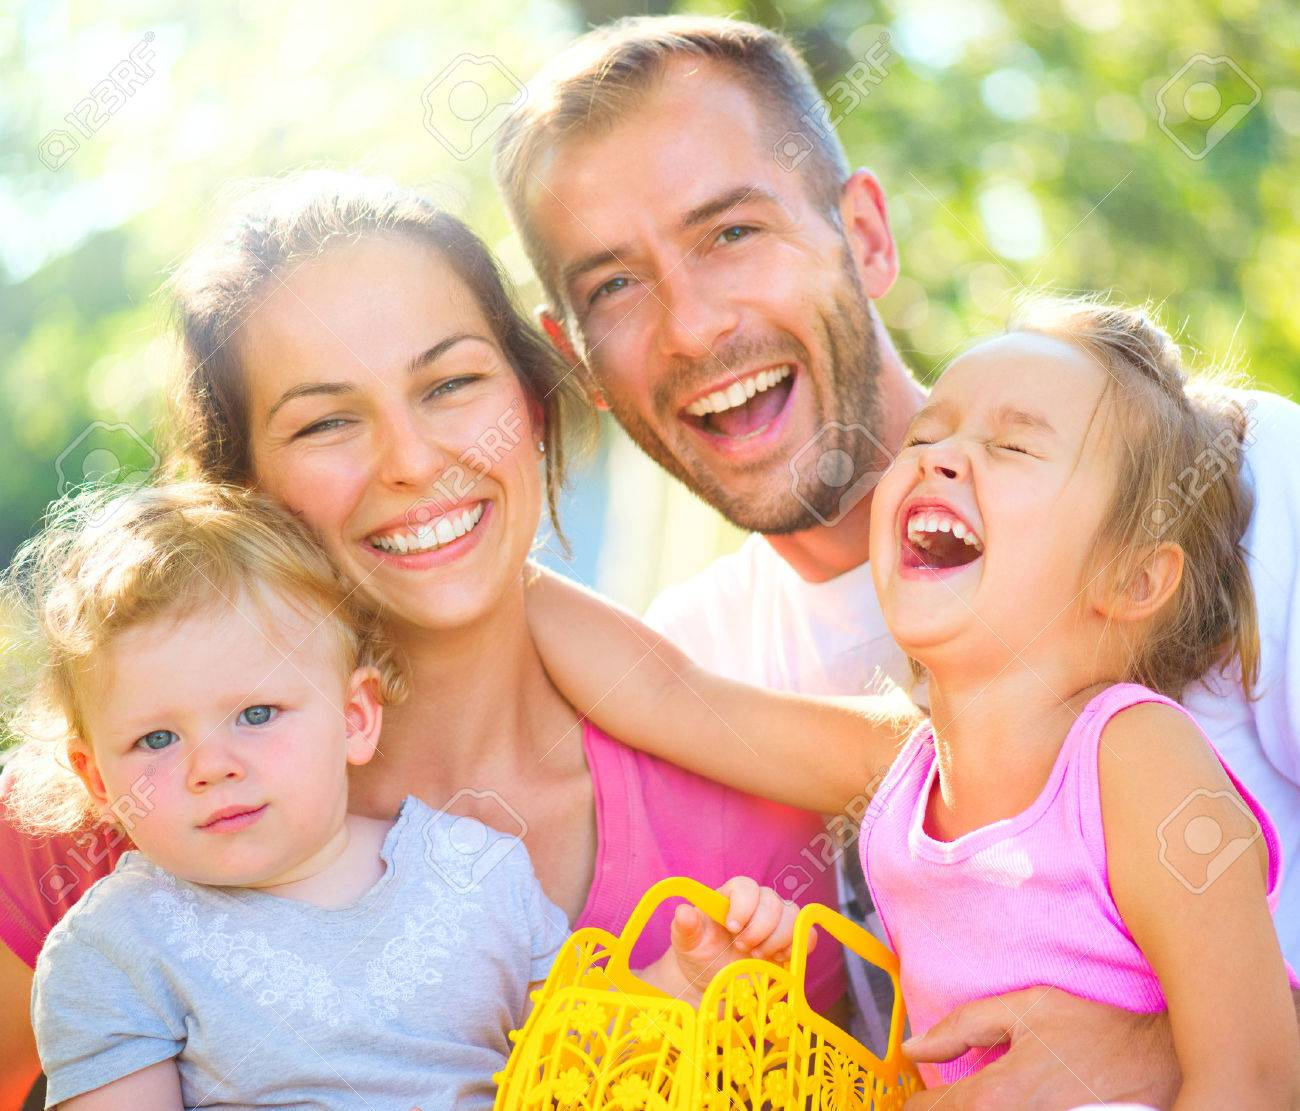 Happy joyful young family with little children outdoors - 62172123